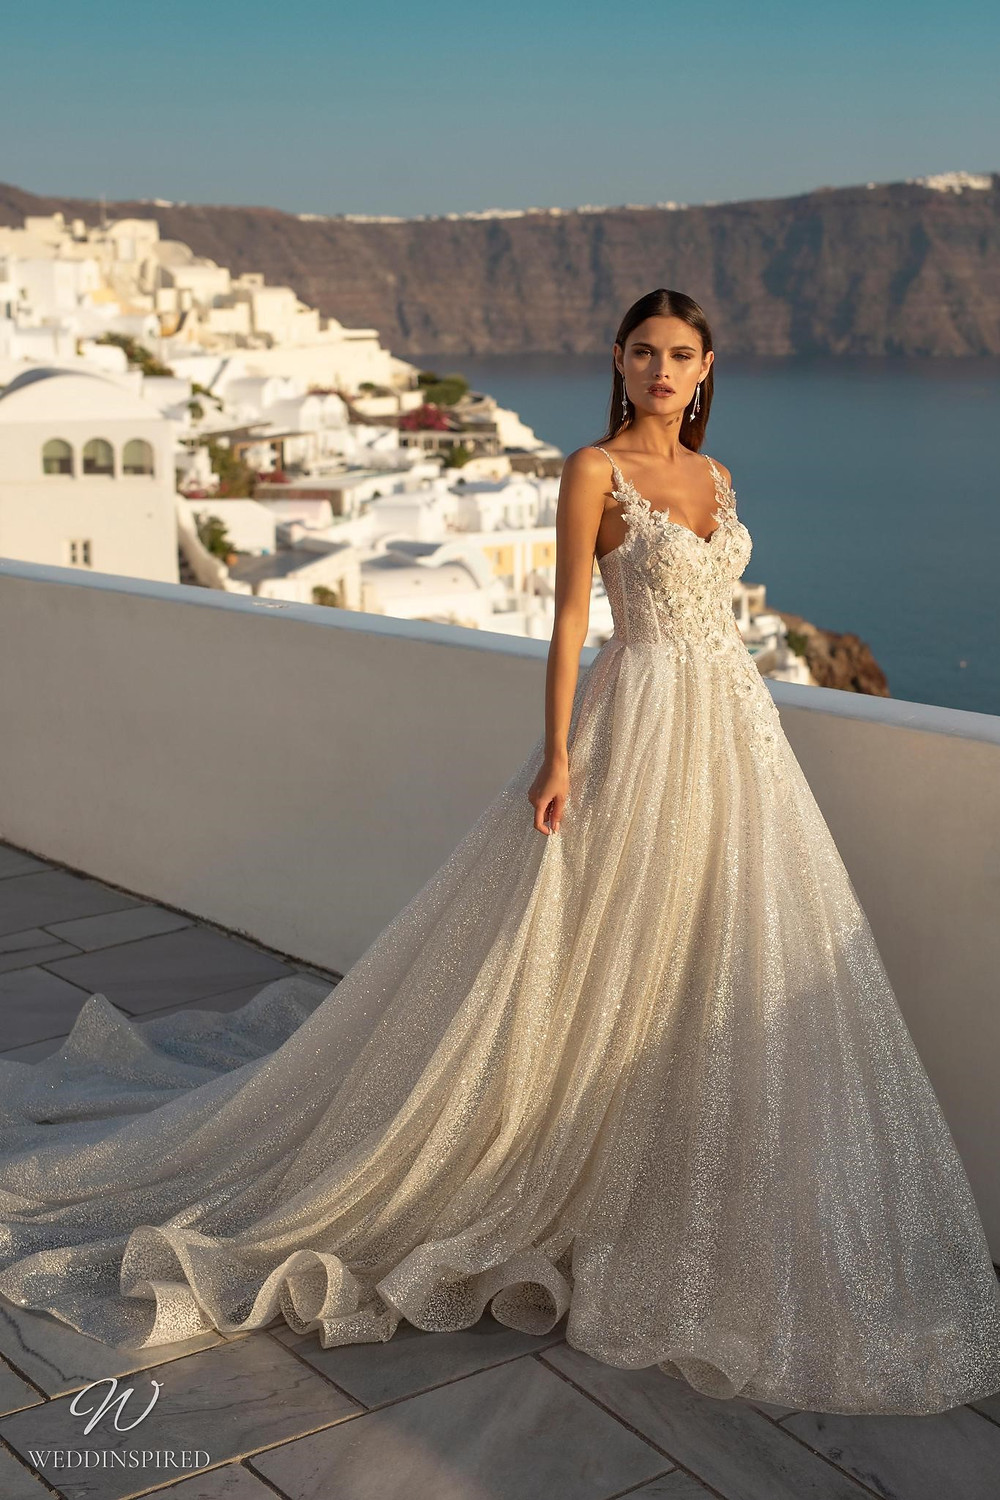 A Ricca Sposa sparkly ball gown wedding dress with lace straps and a train